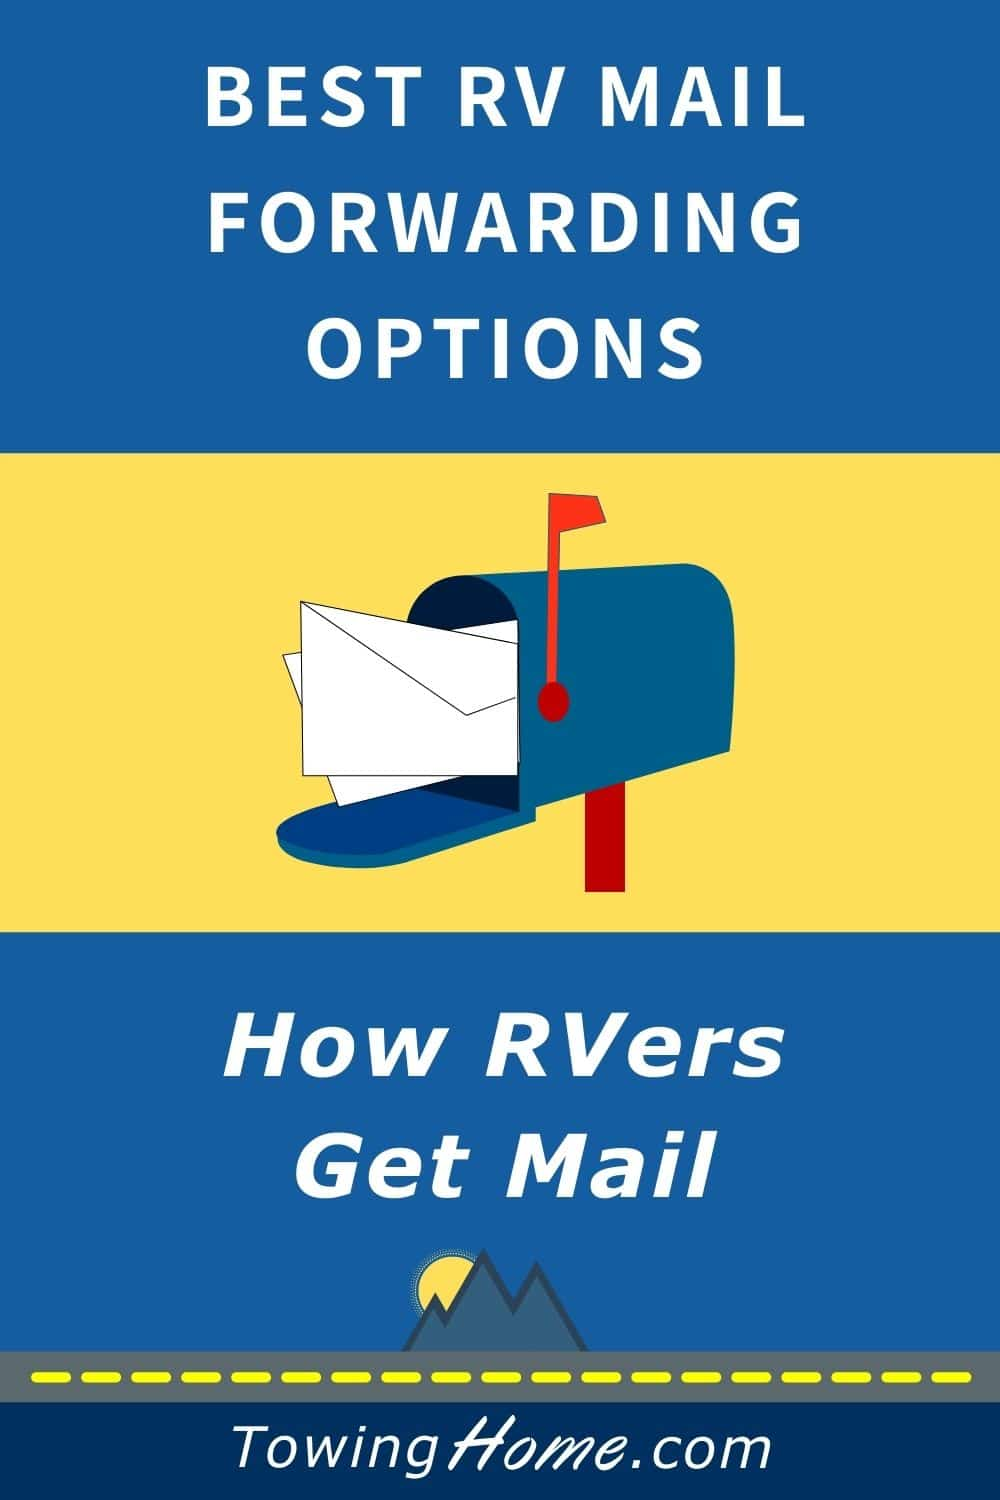 Best RV Mail Forwarding Services - How RVers Get Mail